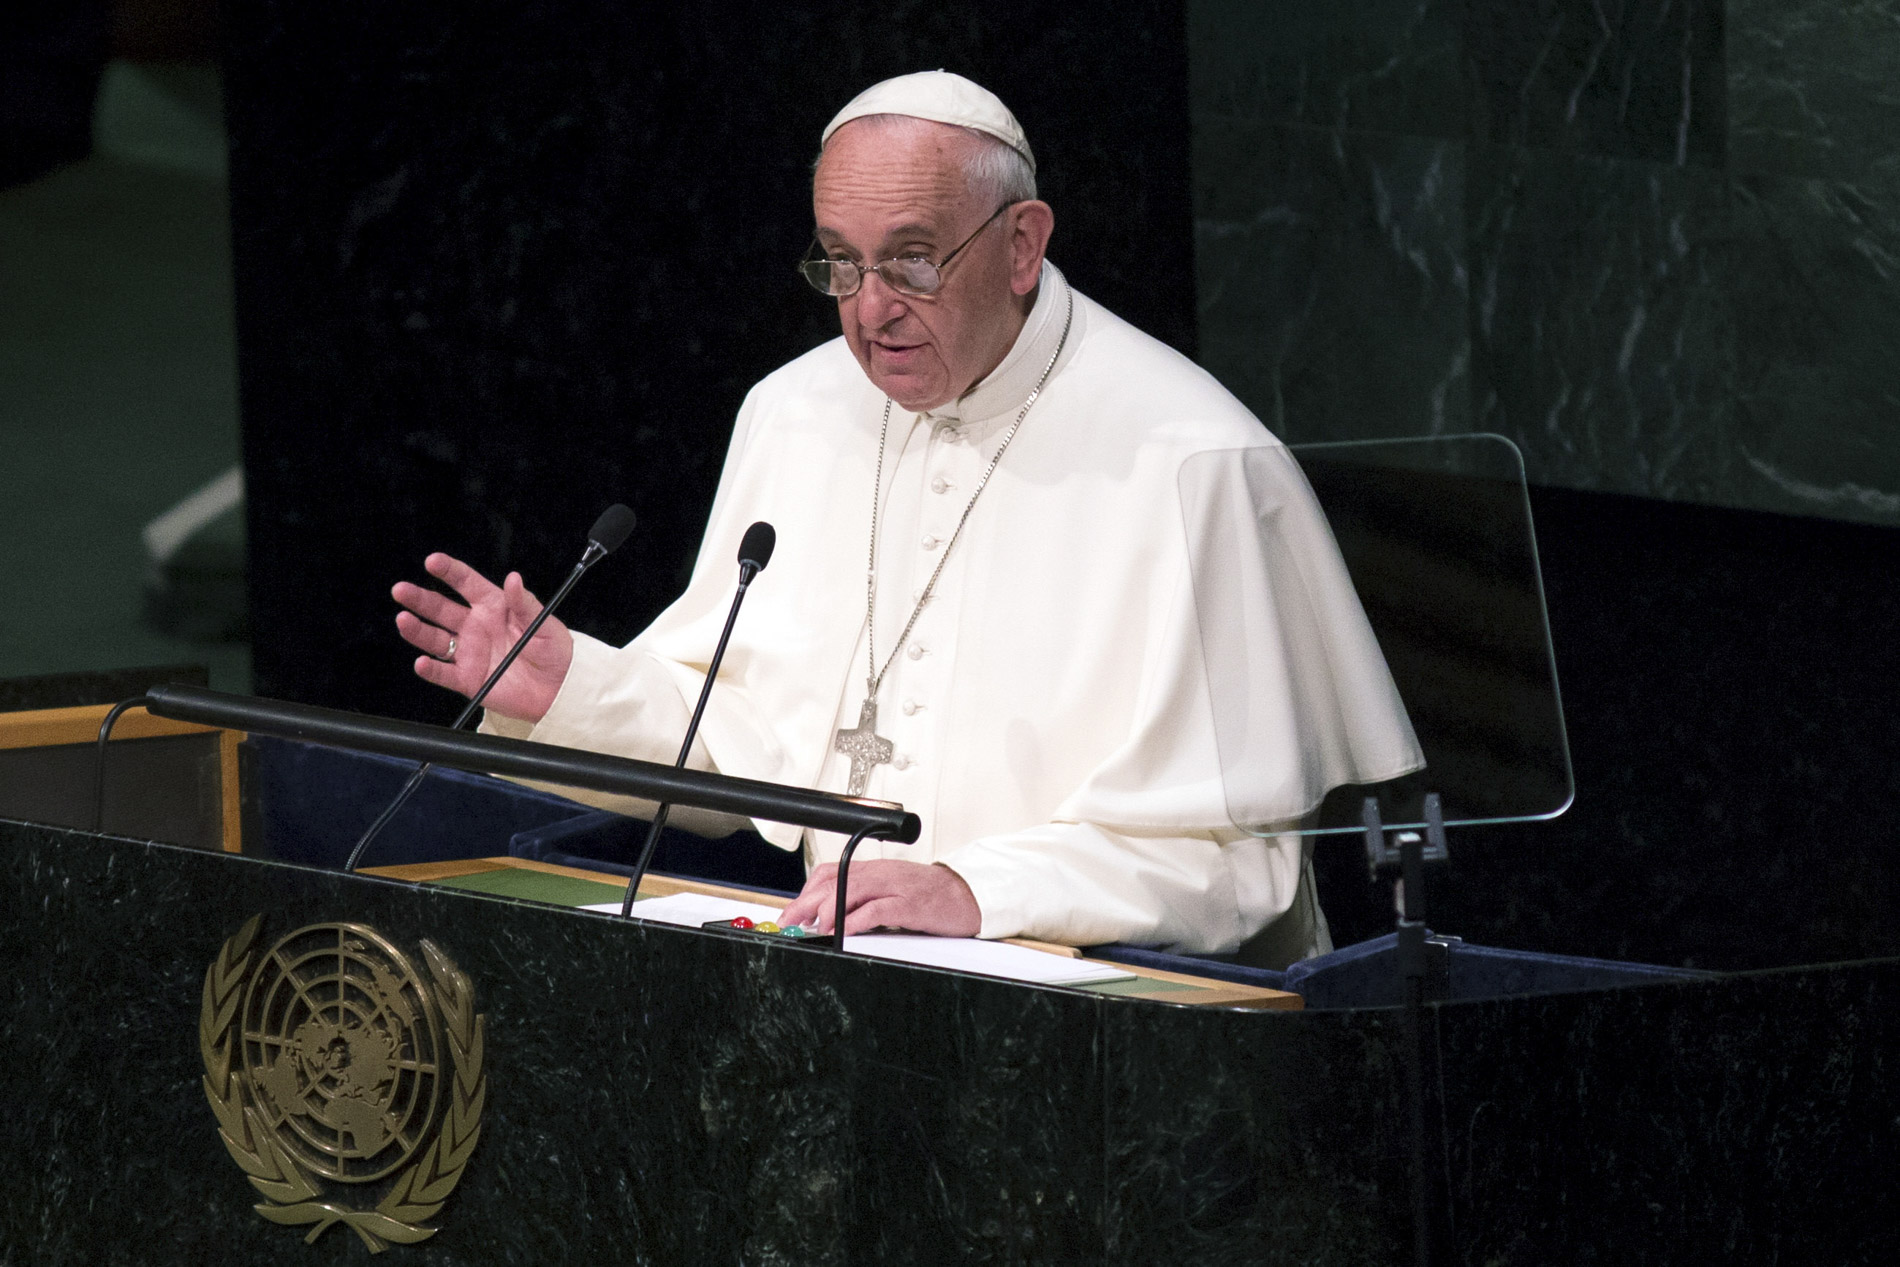 Pope's Opening Address to the 2015 Synod on the Family